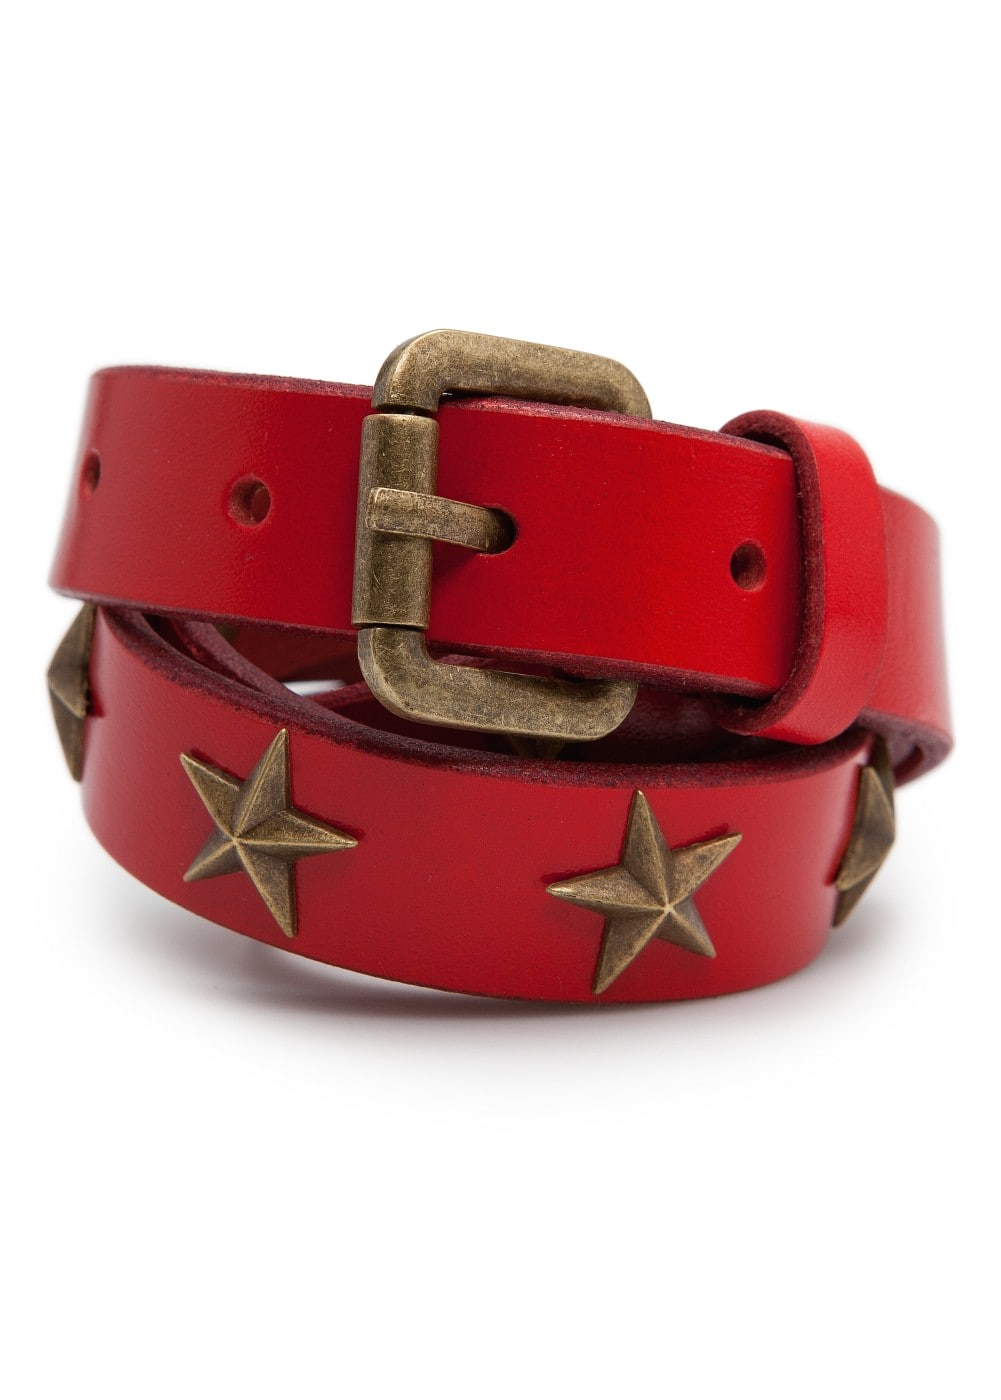 Stars leather belt